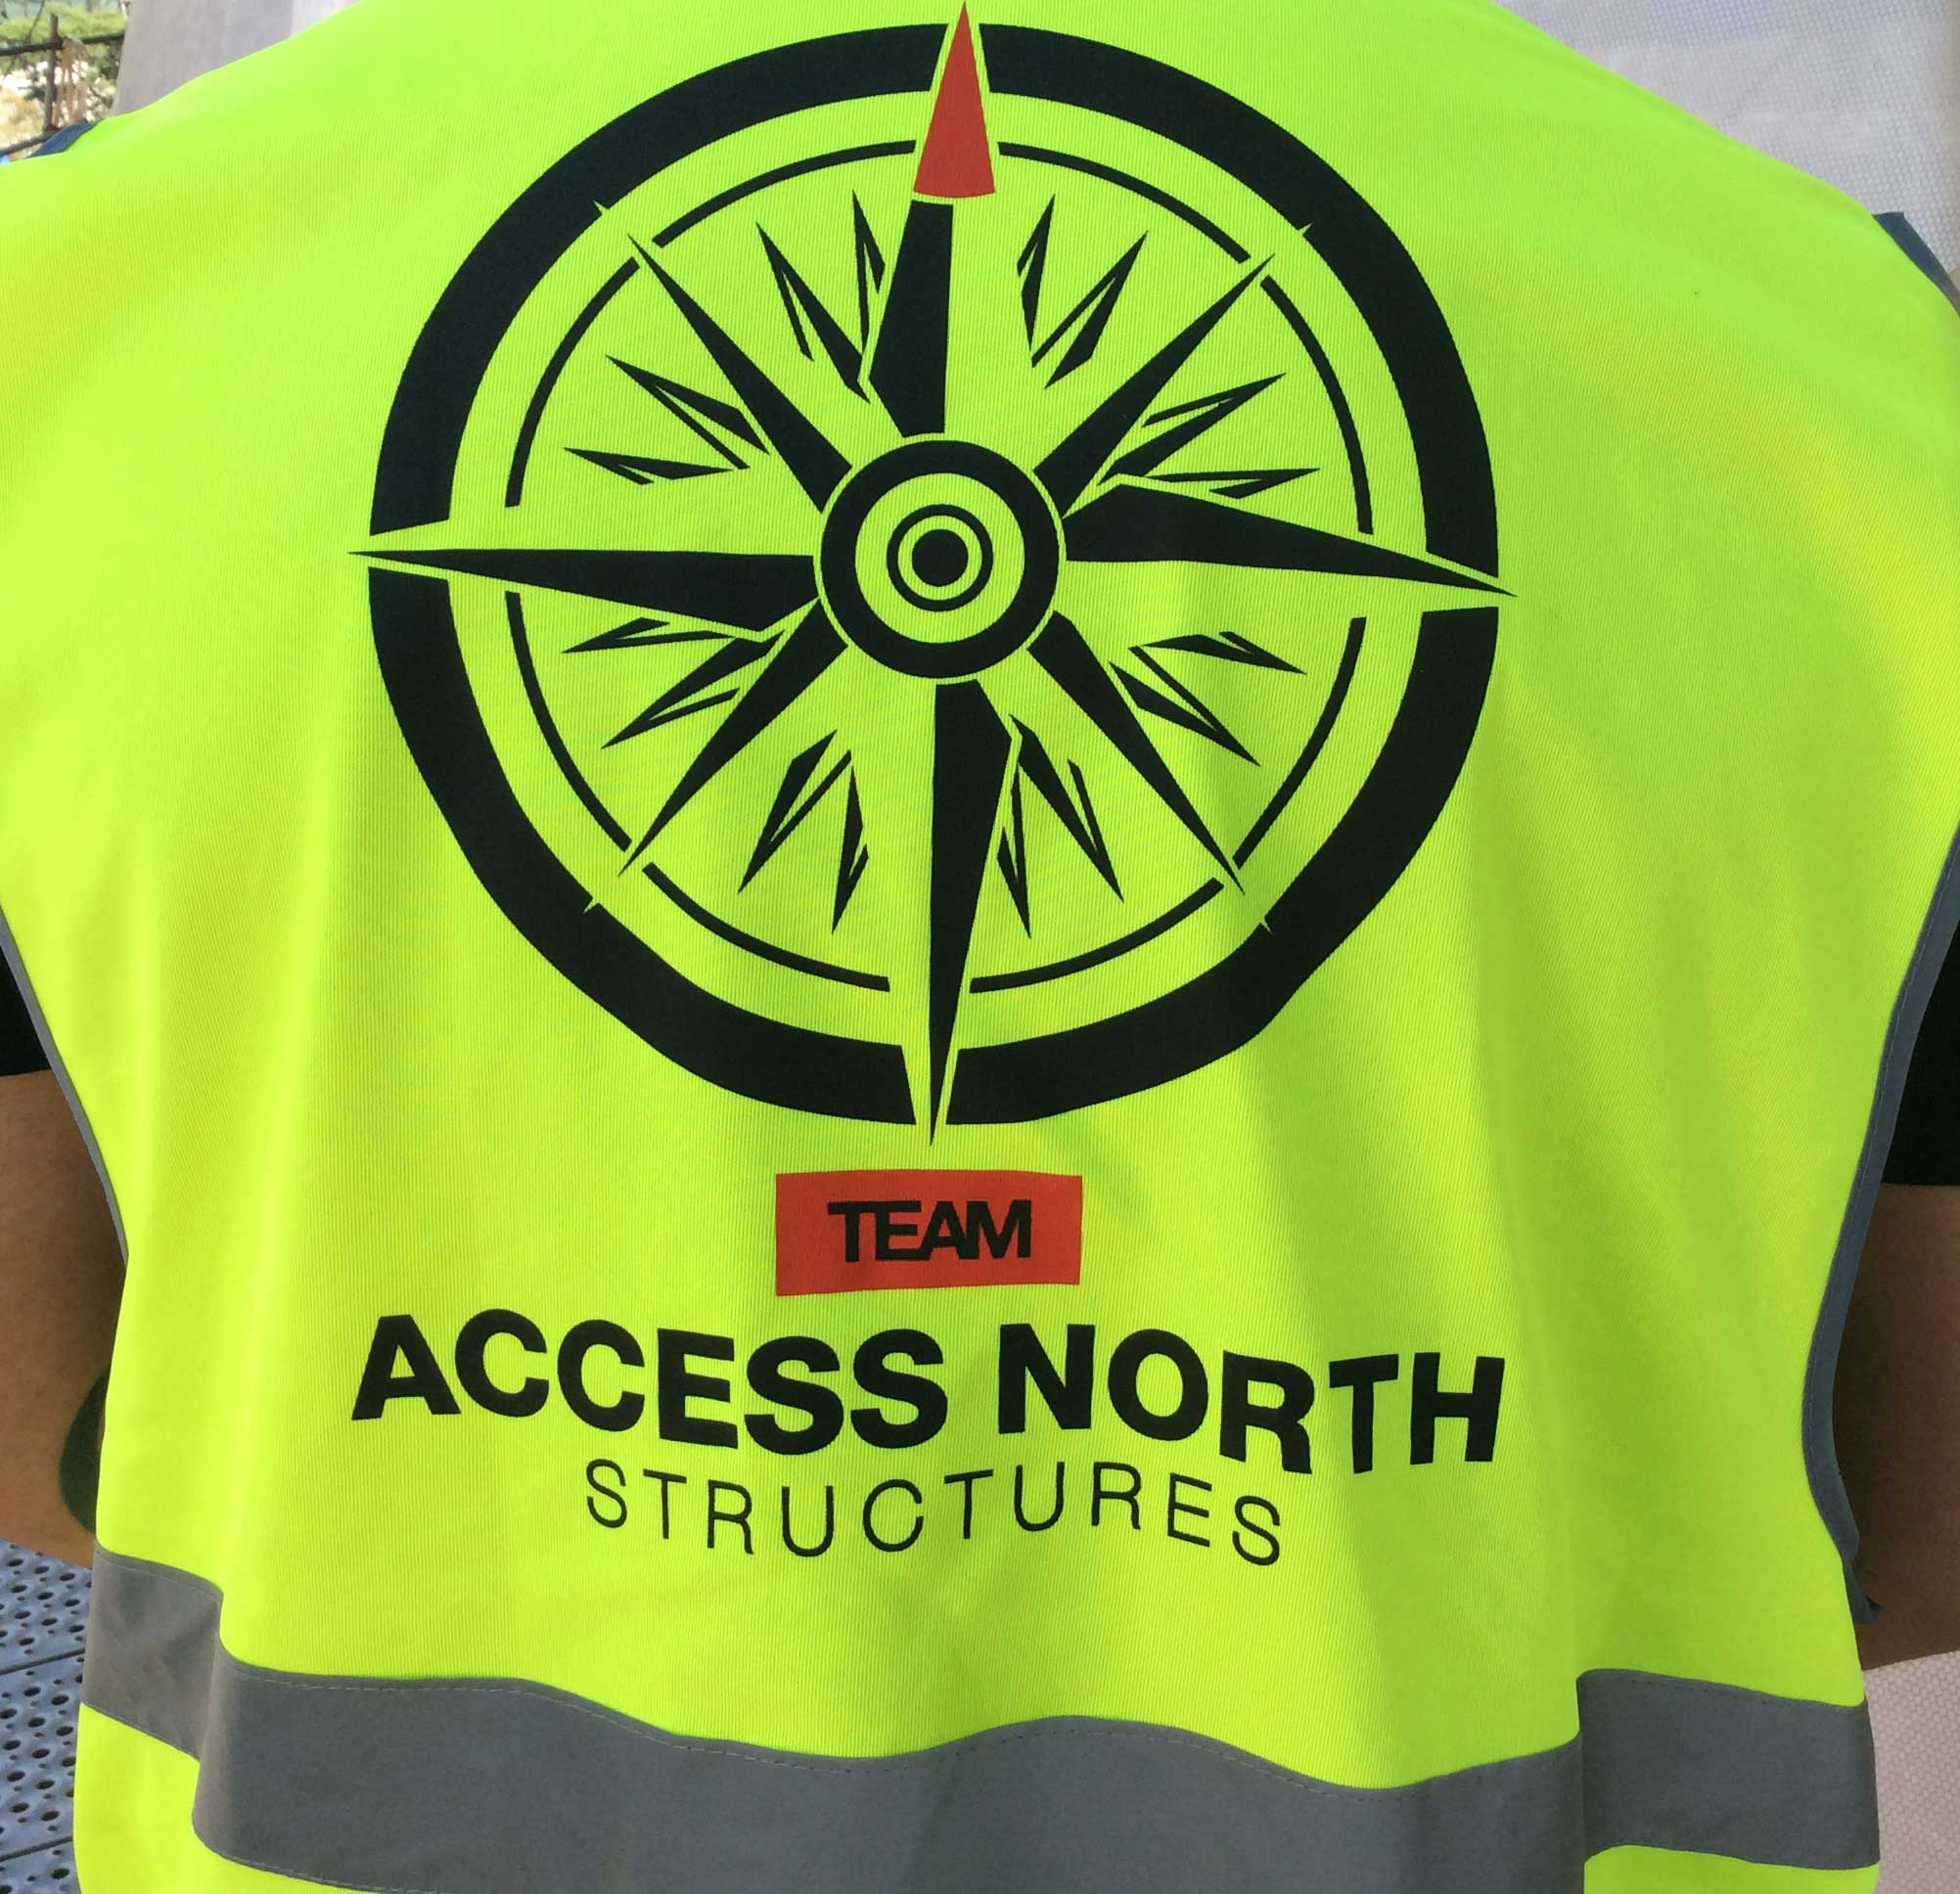 Access North Structures - Emergency Repairs & Call Outs